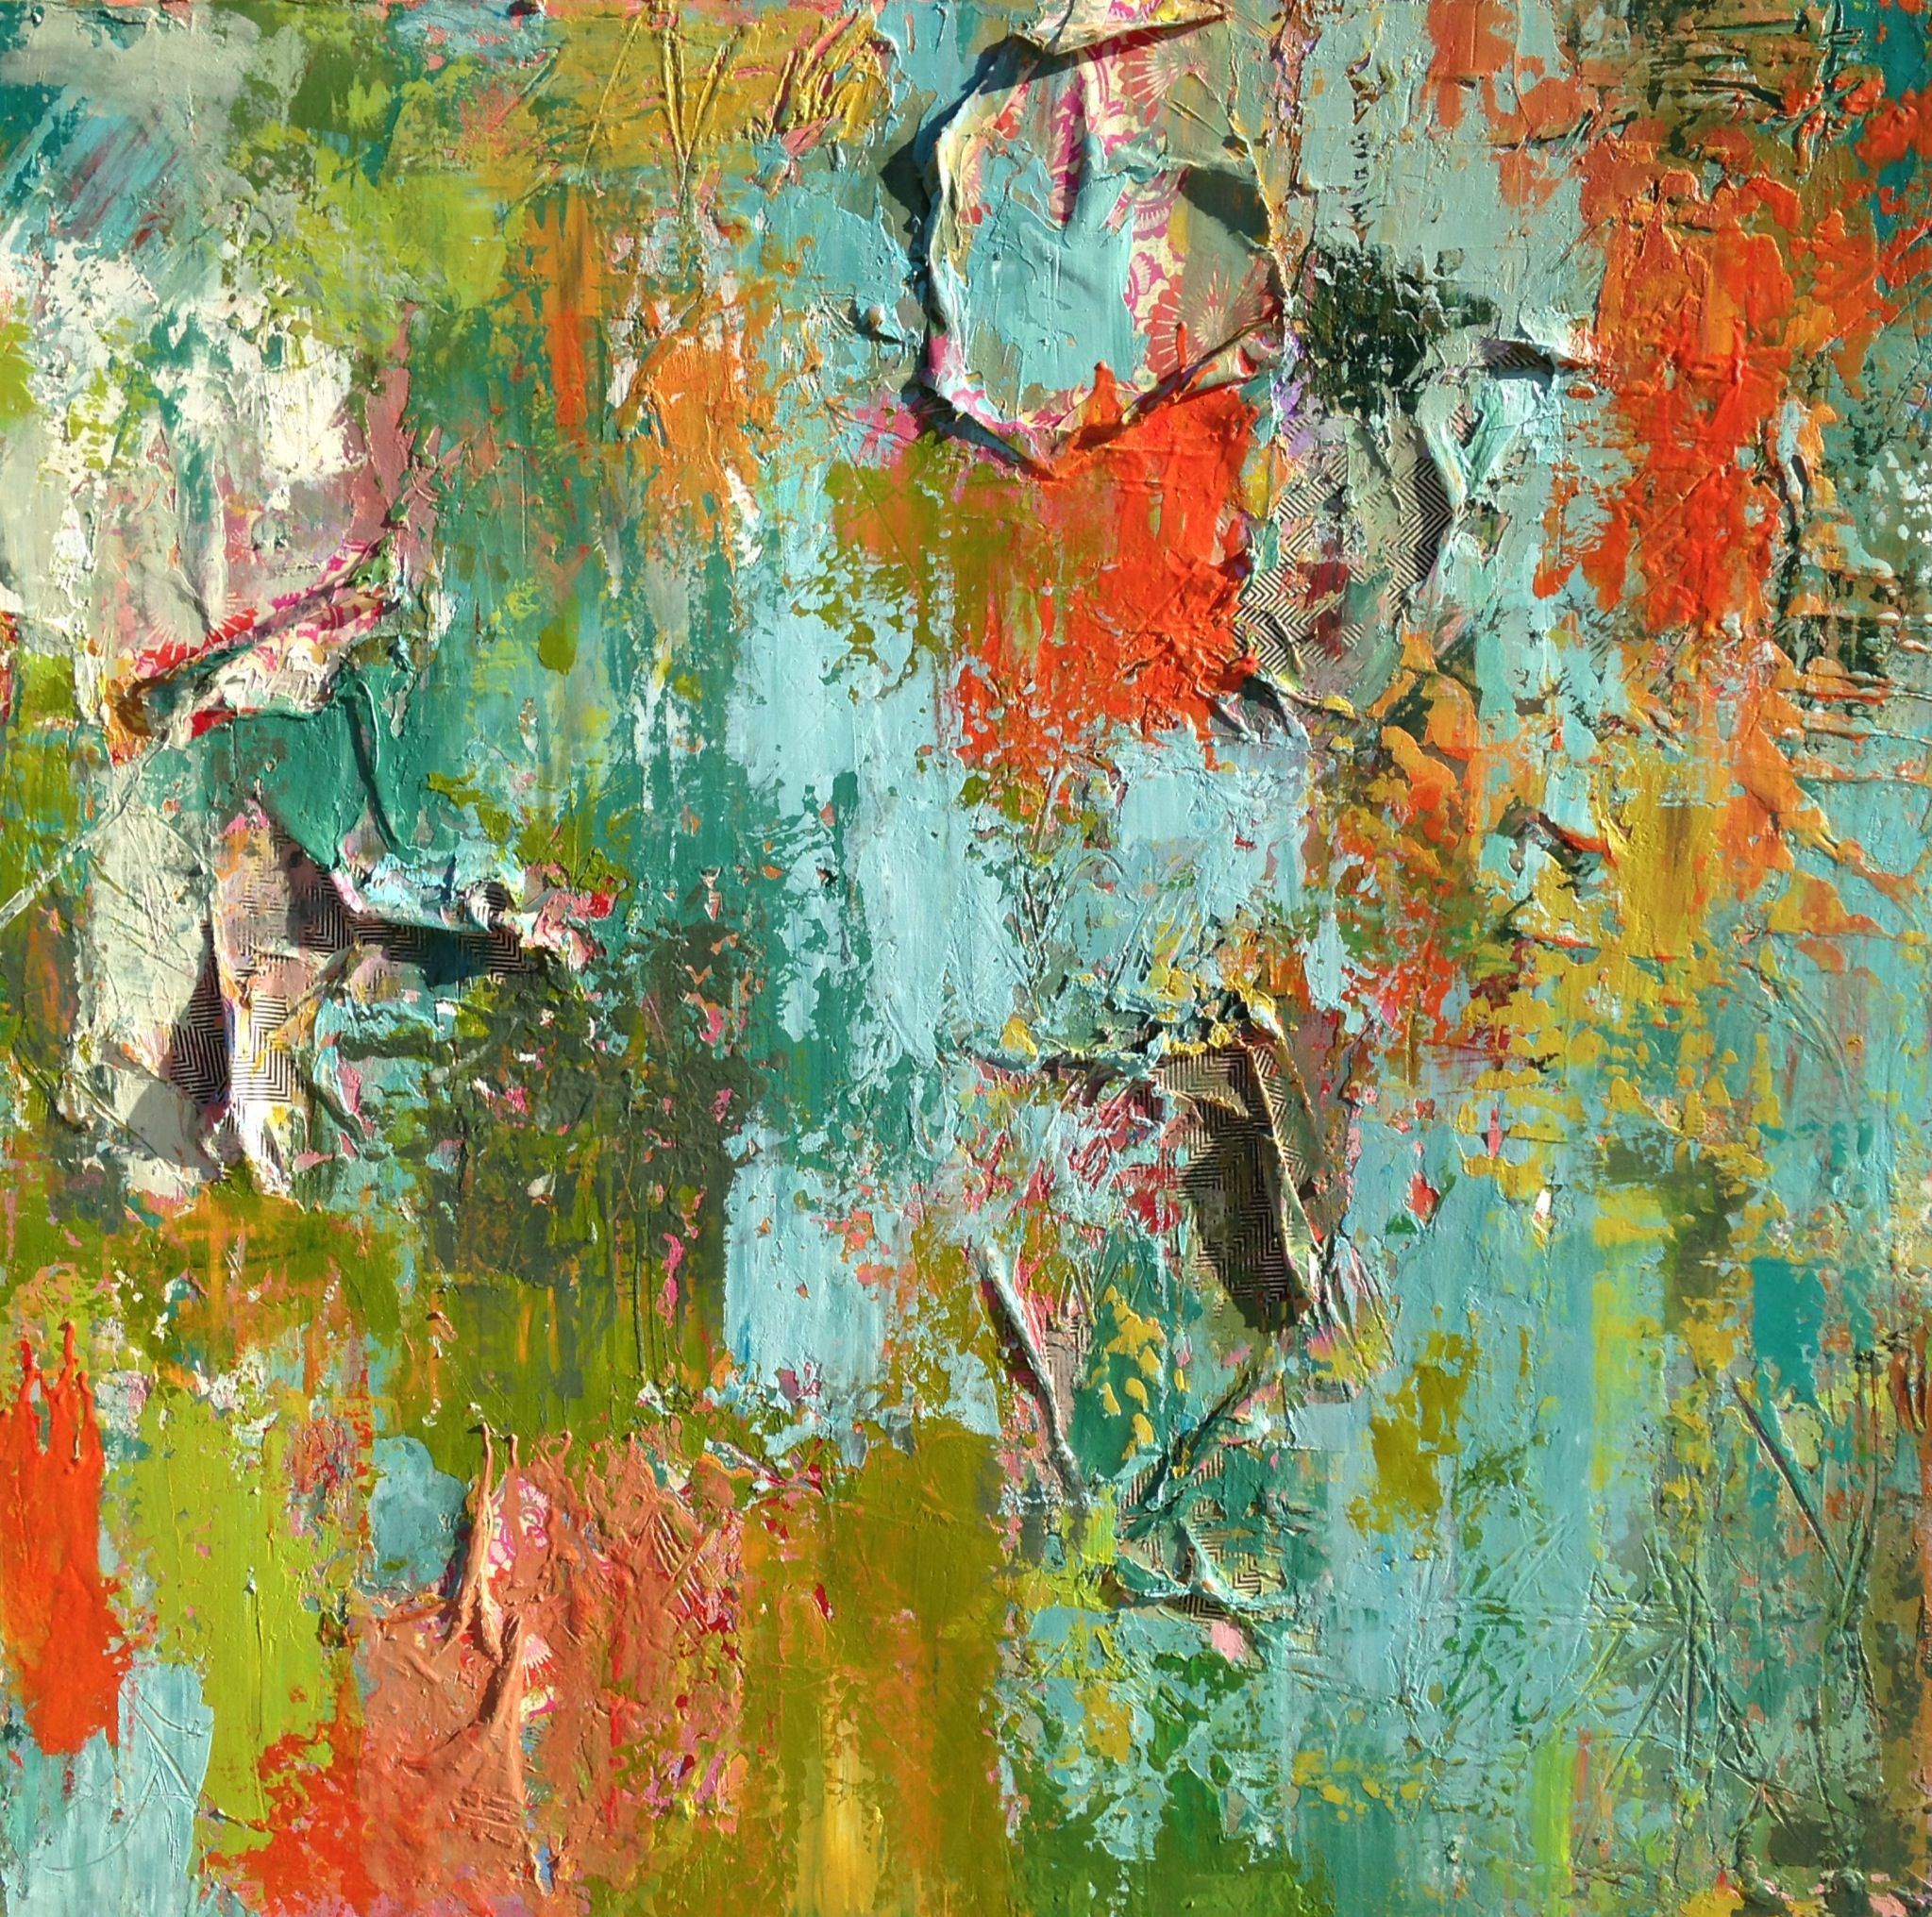 Windy O'connor | Abstract Art | Painting, Art, Playroom Art